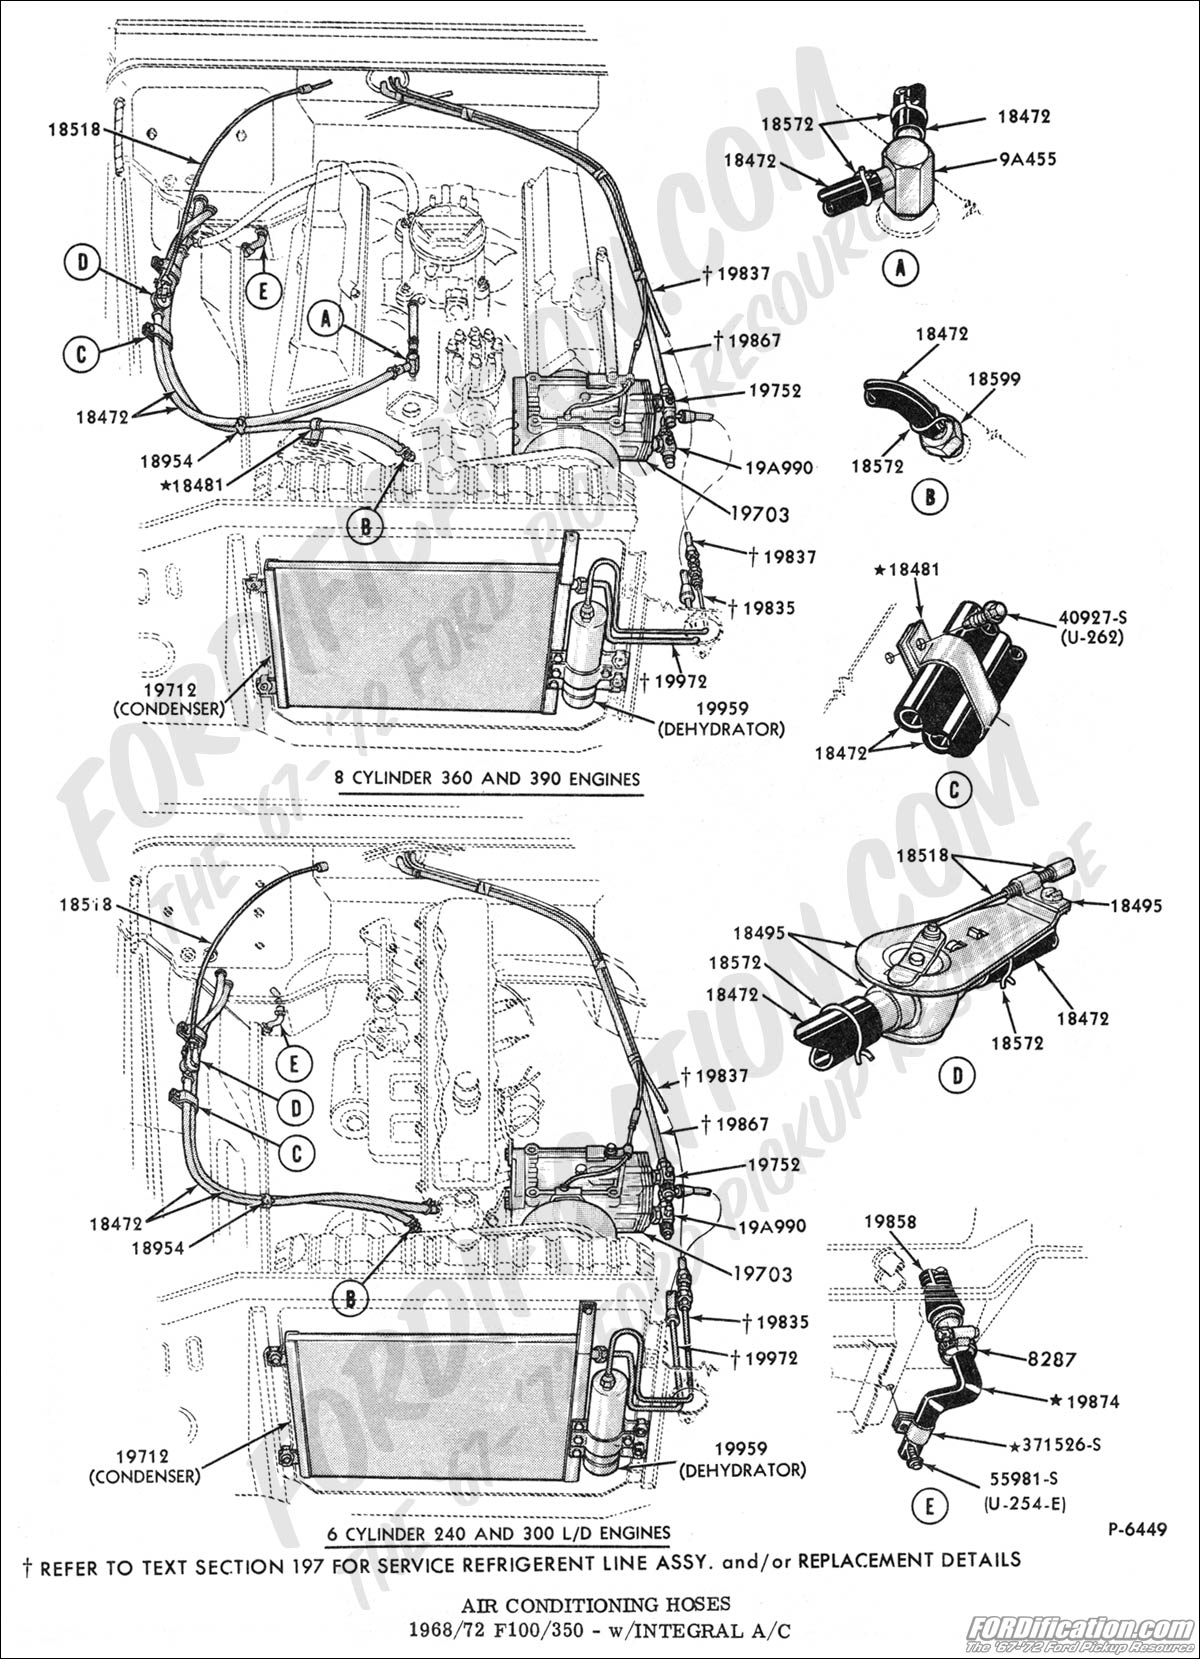 Electronic Power Steering in addition Replace Blend Door Motor furthermore 1988 Ford F150 Engine Diagram Thunderbird Questions Need Fuse Box For 1   1140 Ssl Pics Ravishing Together With 1986 Wiring Chevy Truck Besides 19 likewise 2001 Ford F350 Headlight Switch Wiring Diagram likewise Turn Signal Wiring Diagram For 1999 Ford Sterling. on 2005 ford escape fuse box diagram